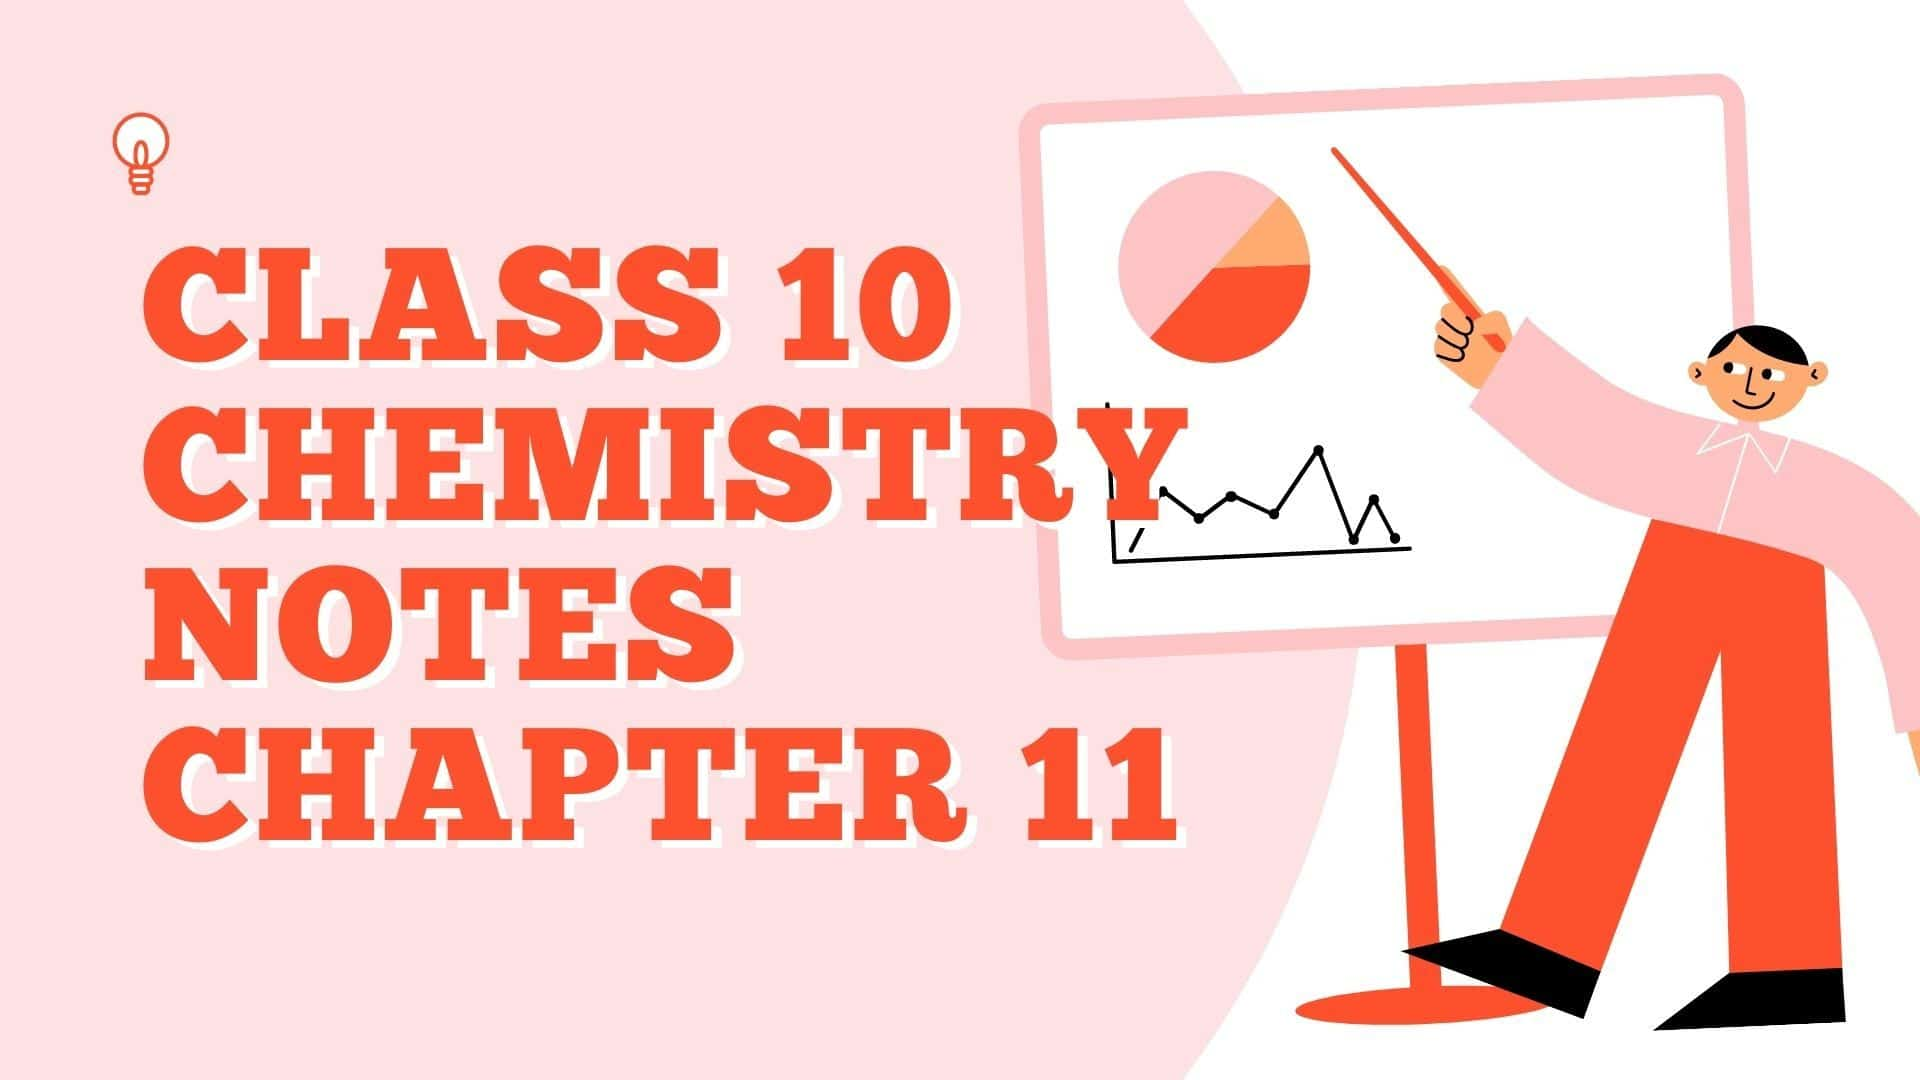 Class 10 Chemistry Notes Chapter 11